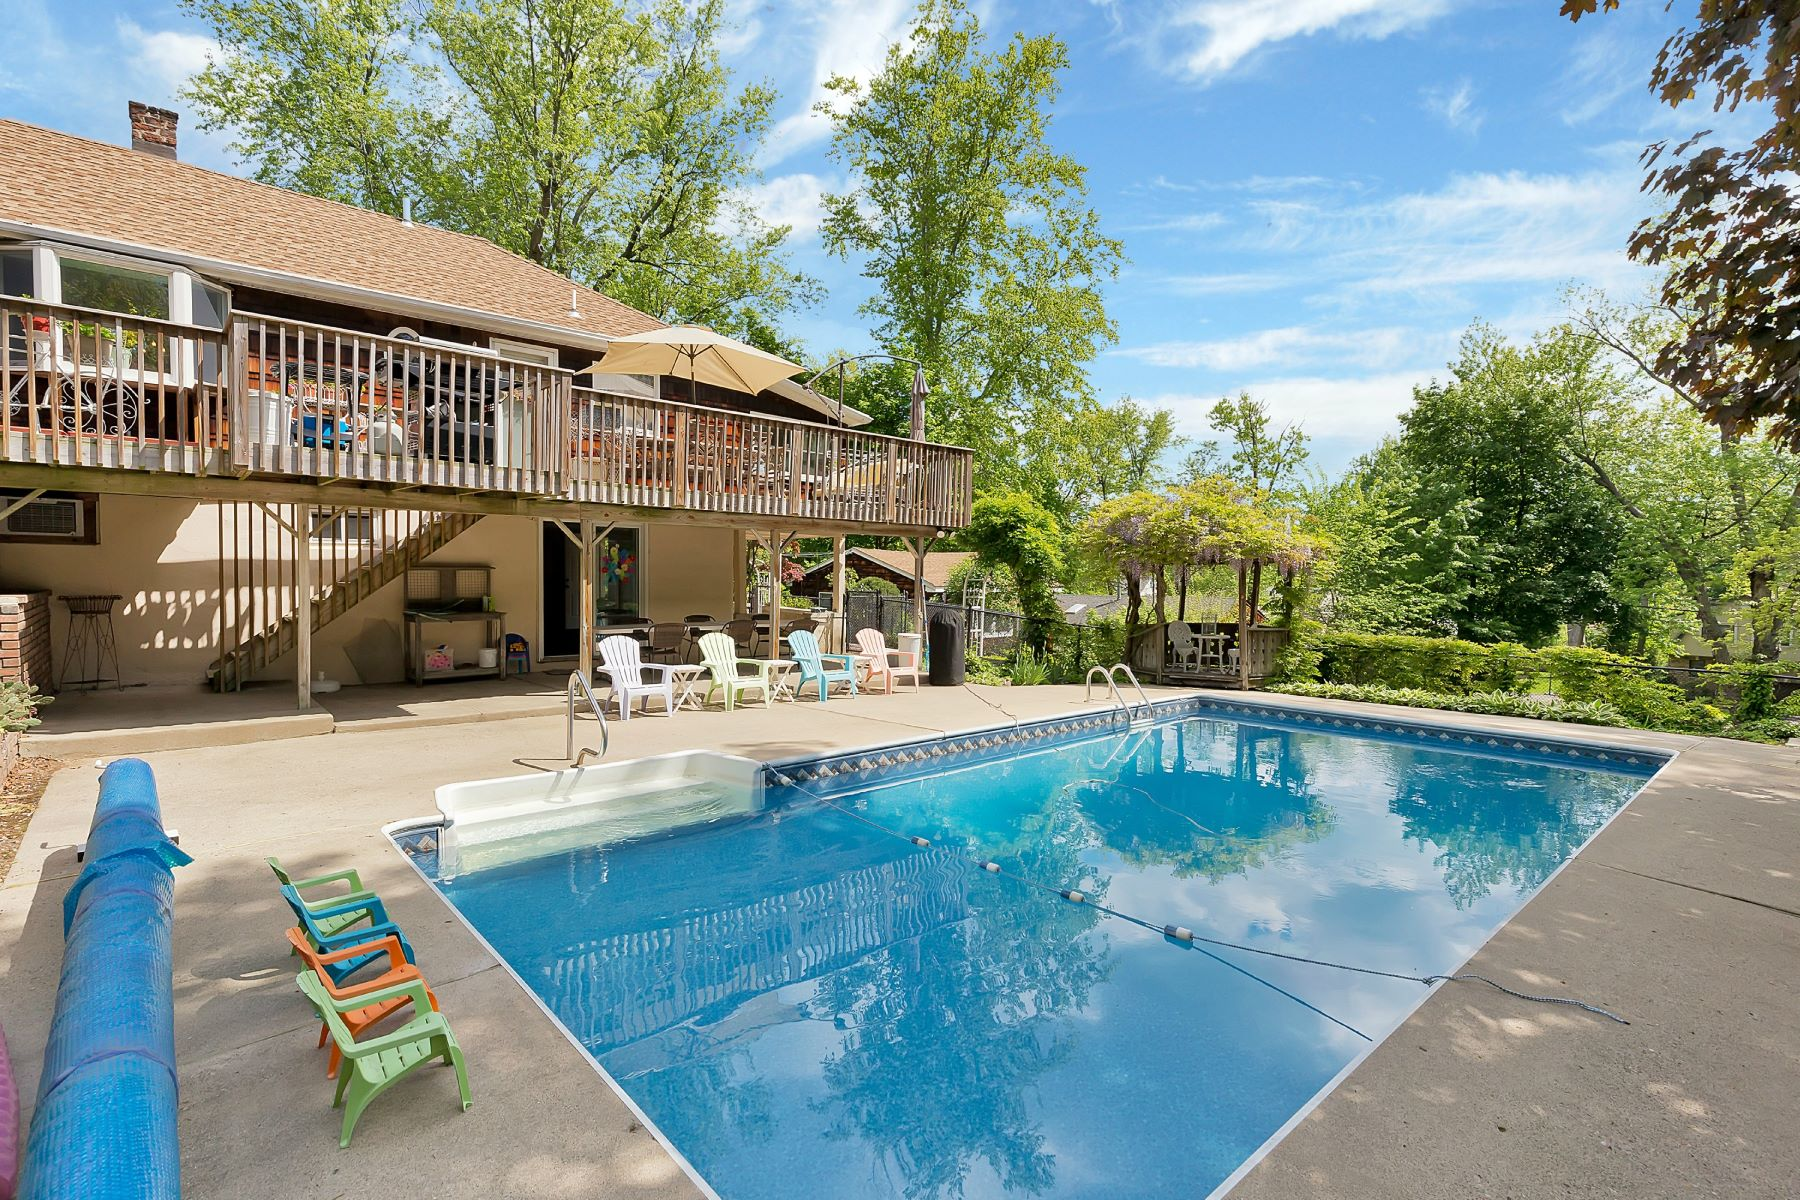 Single Family Home for Sale at Special Hillsdale Ranch! 72 Yesler Way Hillsdale, New Jersey 07642 United States